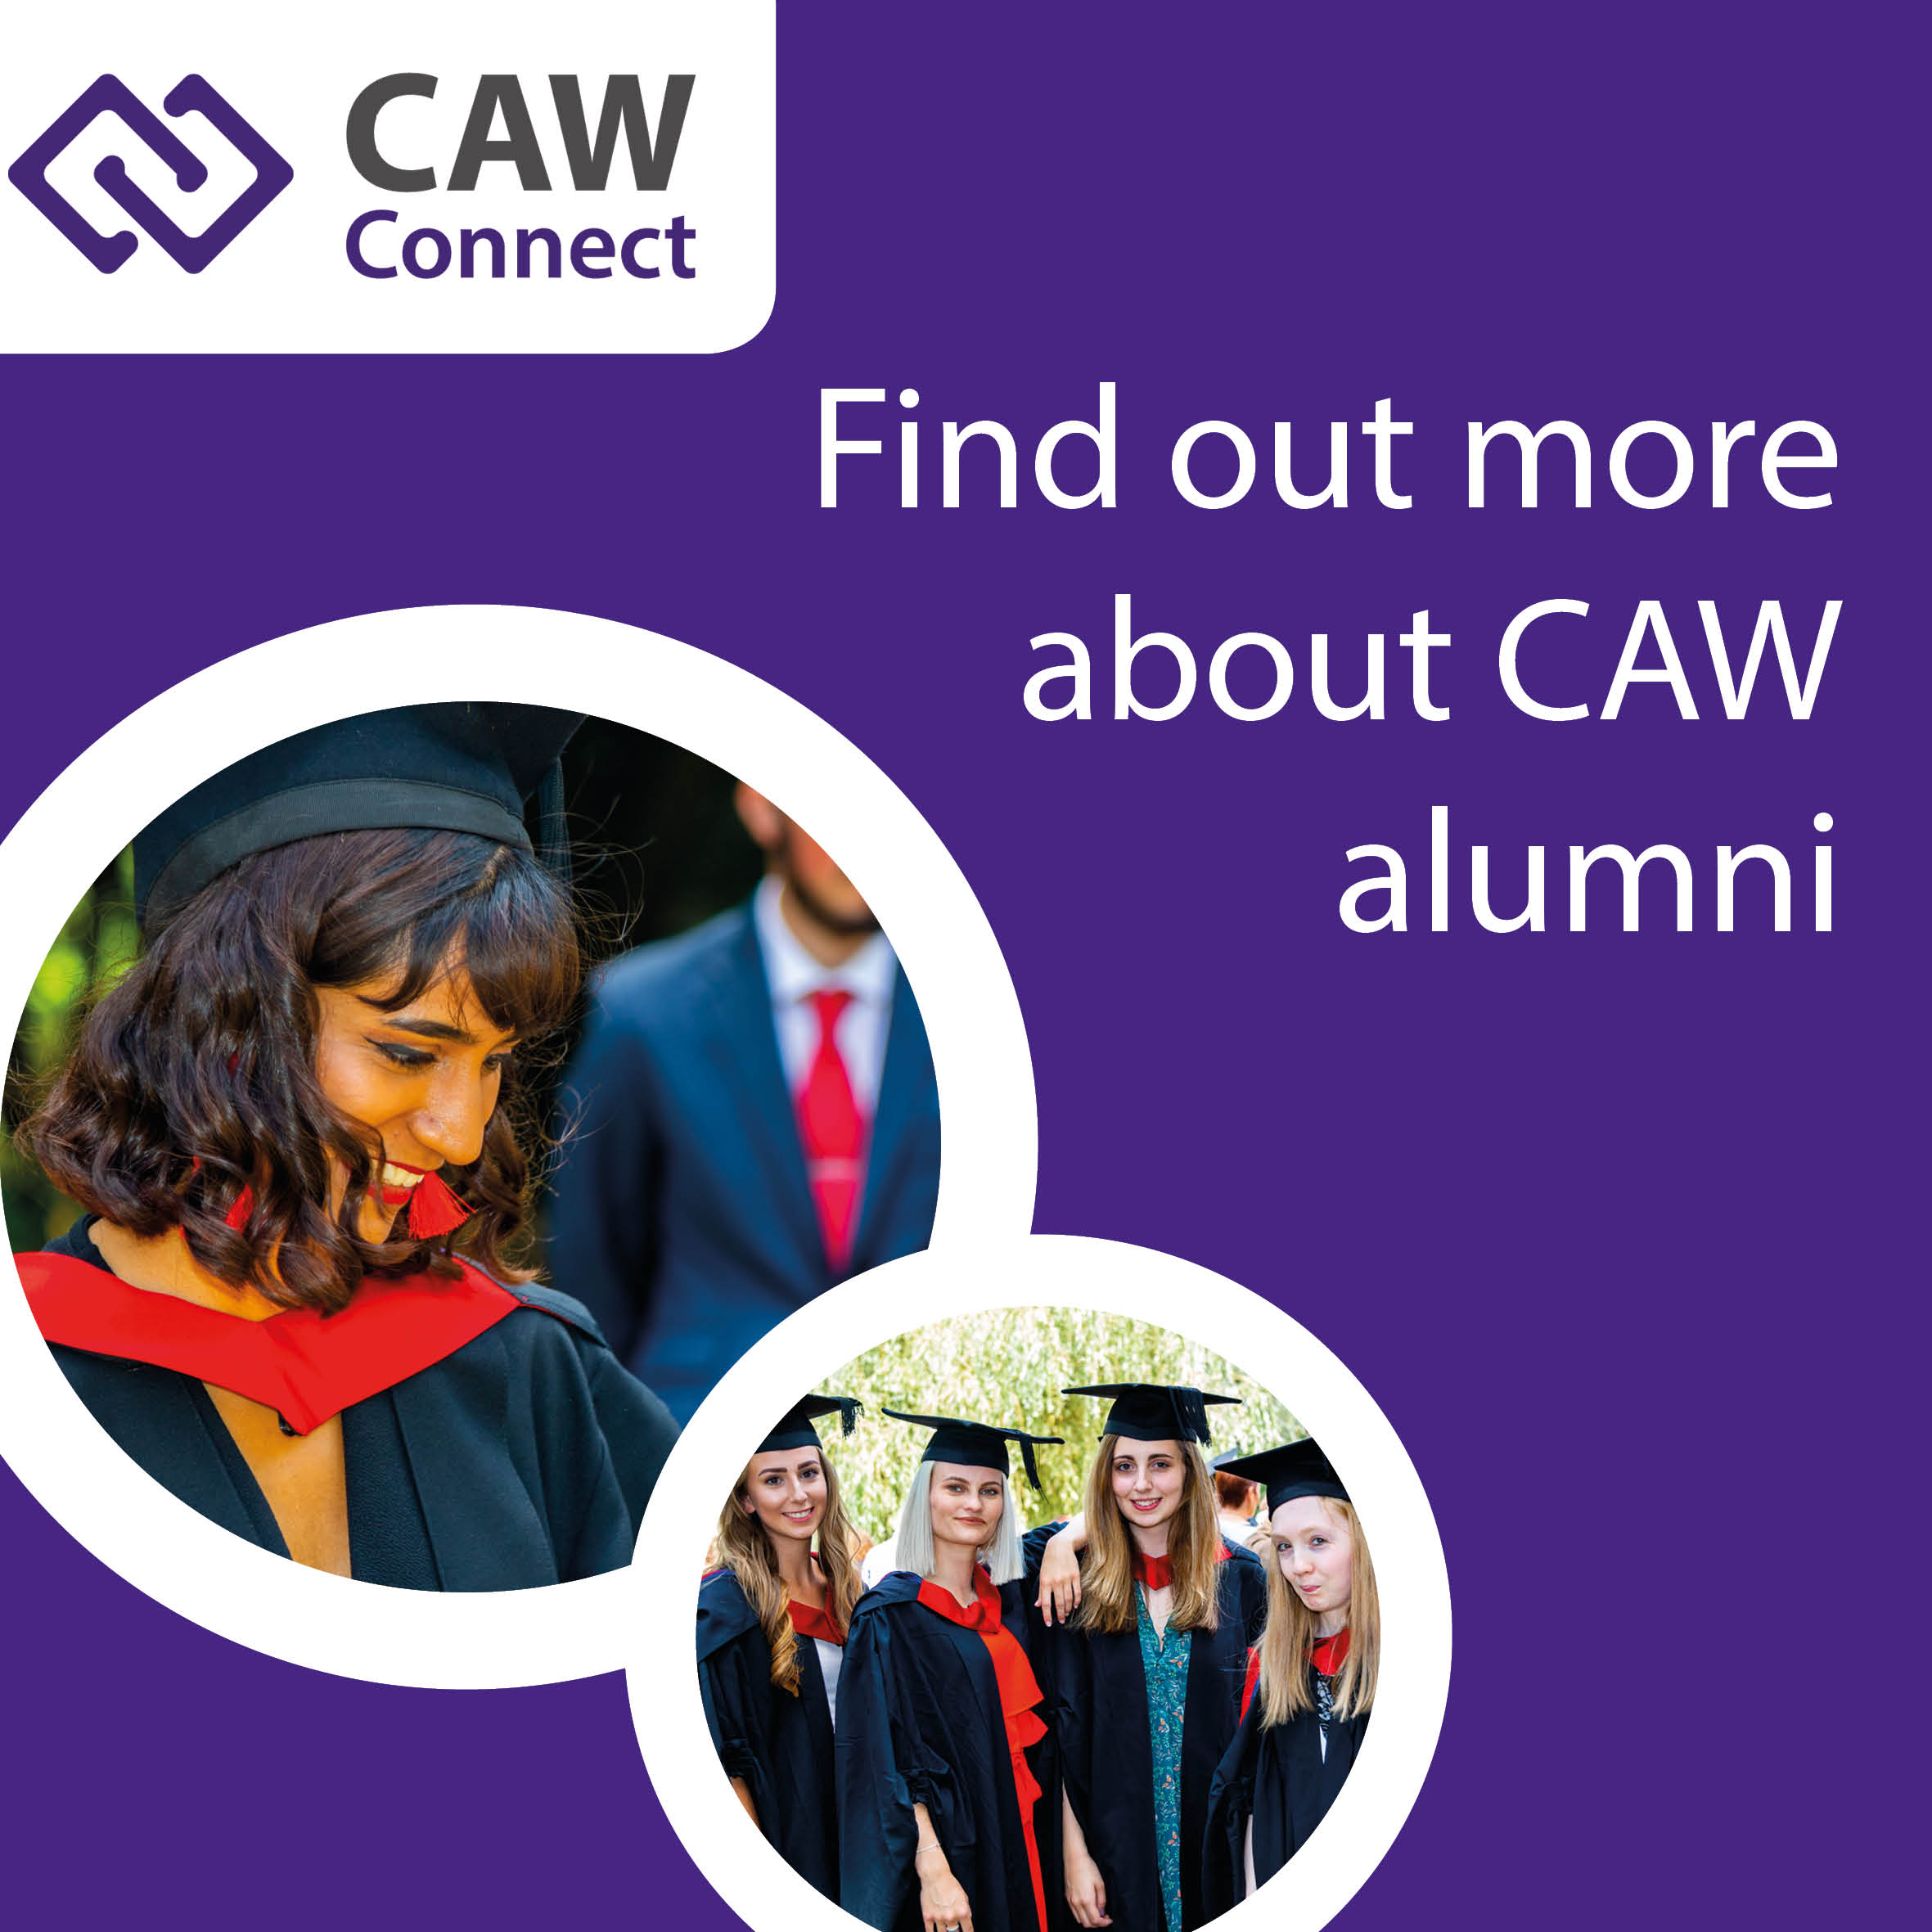 Join your new alumni: CAW Connect